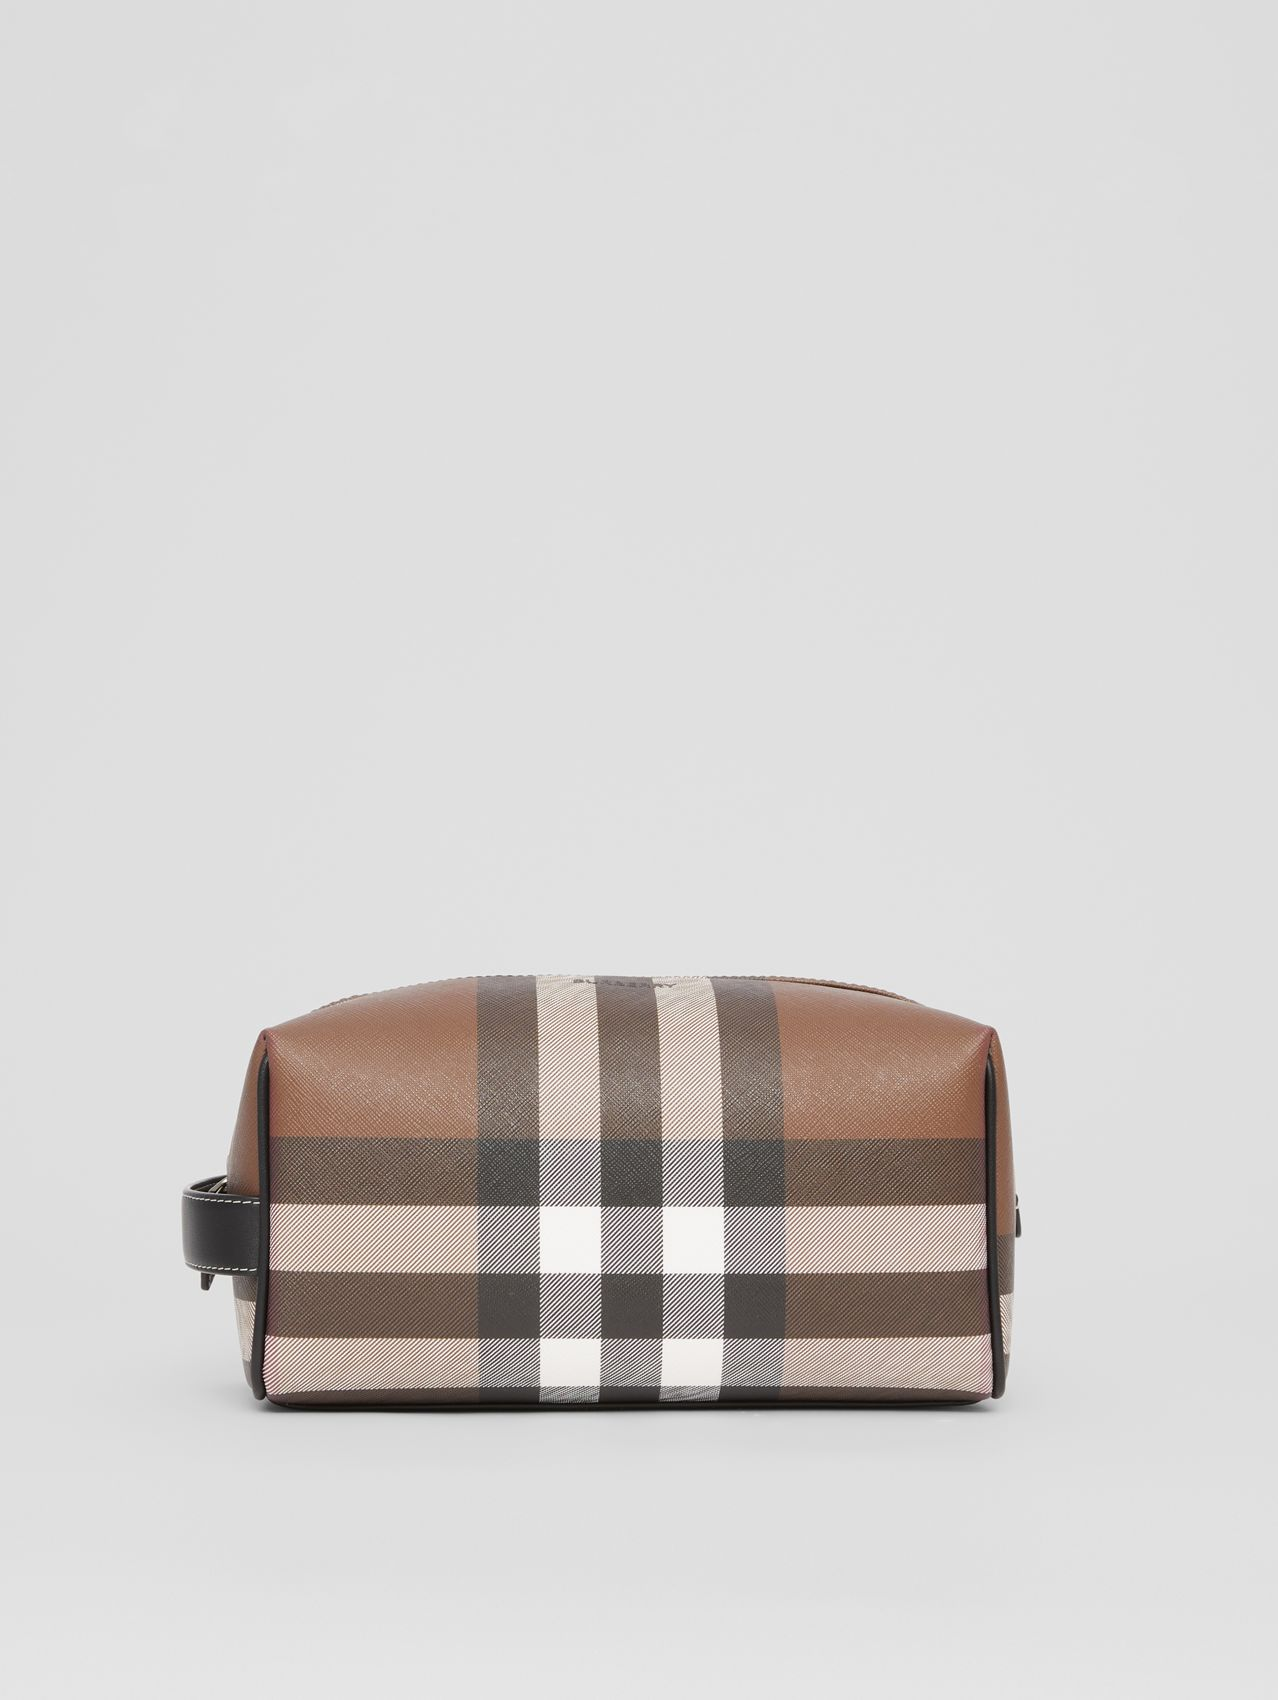 Trousse da viaggio in e-canvas con motivo tartan (Marrone Betulla Scuro)